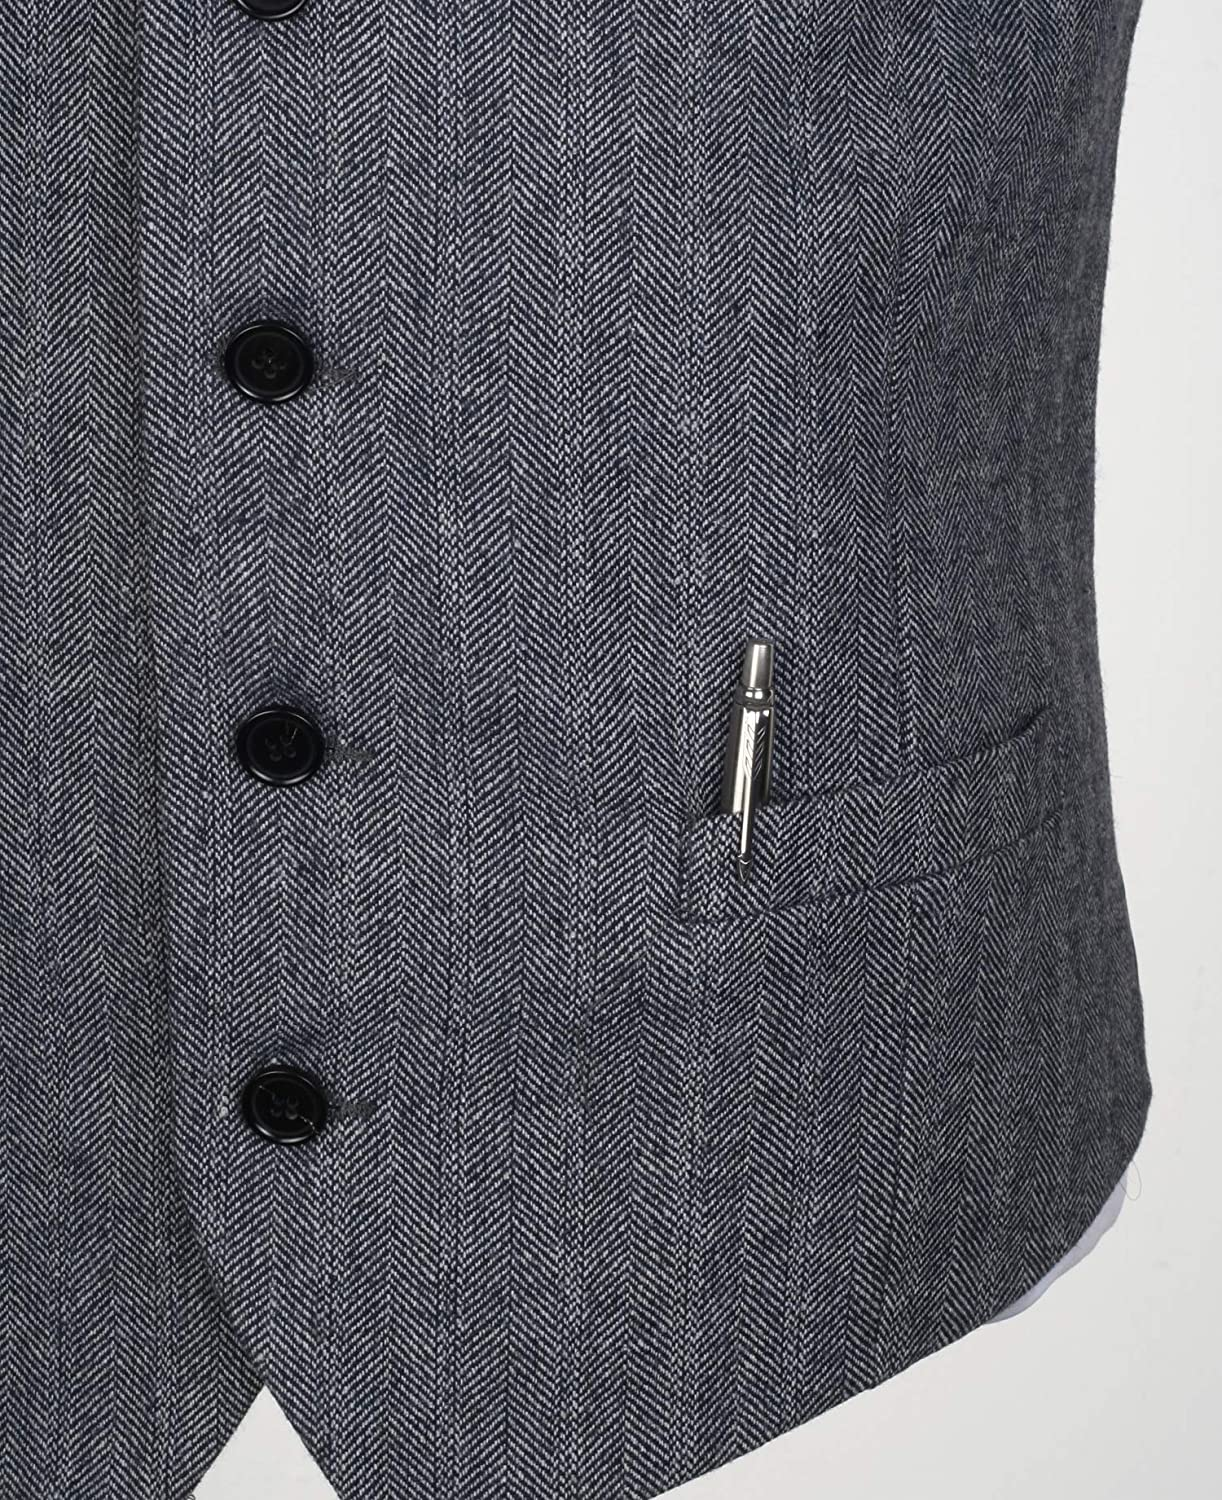 Ruth/&Boaz 2Pockets 4Buttons Wool Herringbone Tweed Tailored Collar Suit Vest